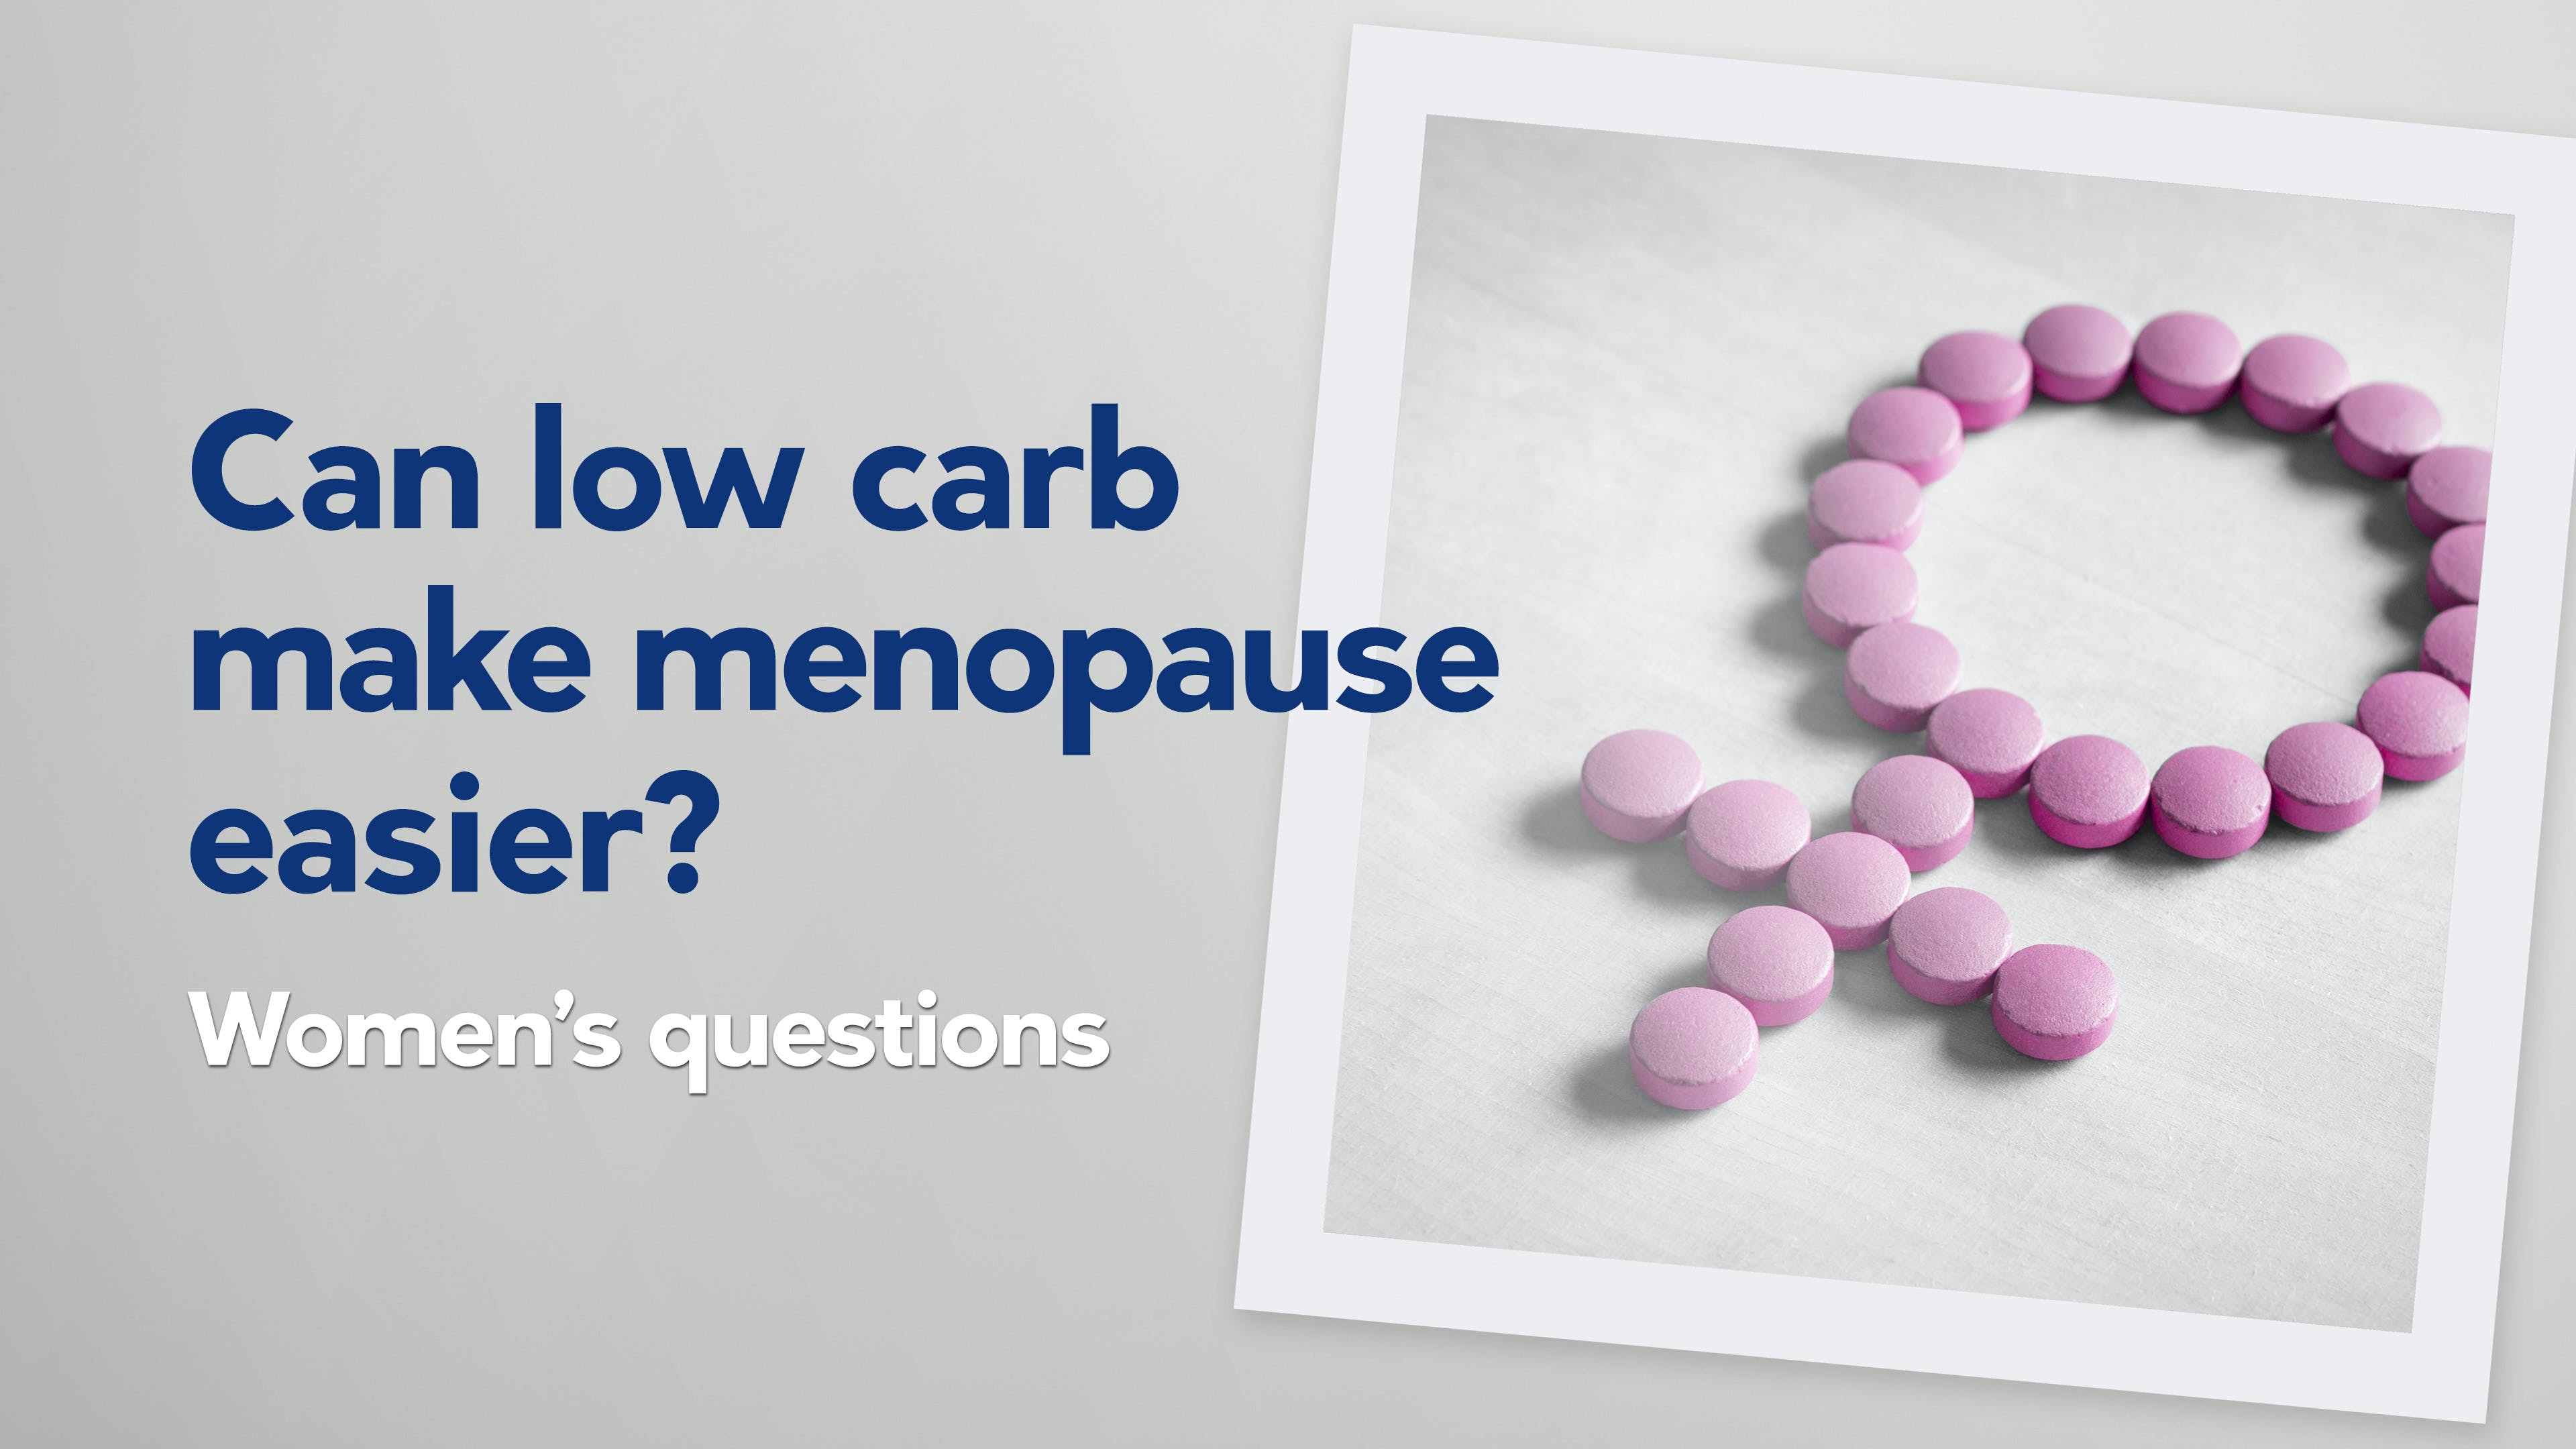 Can low carb make menopause easier?